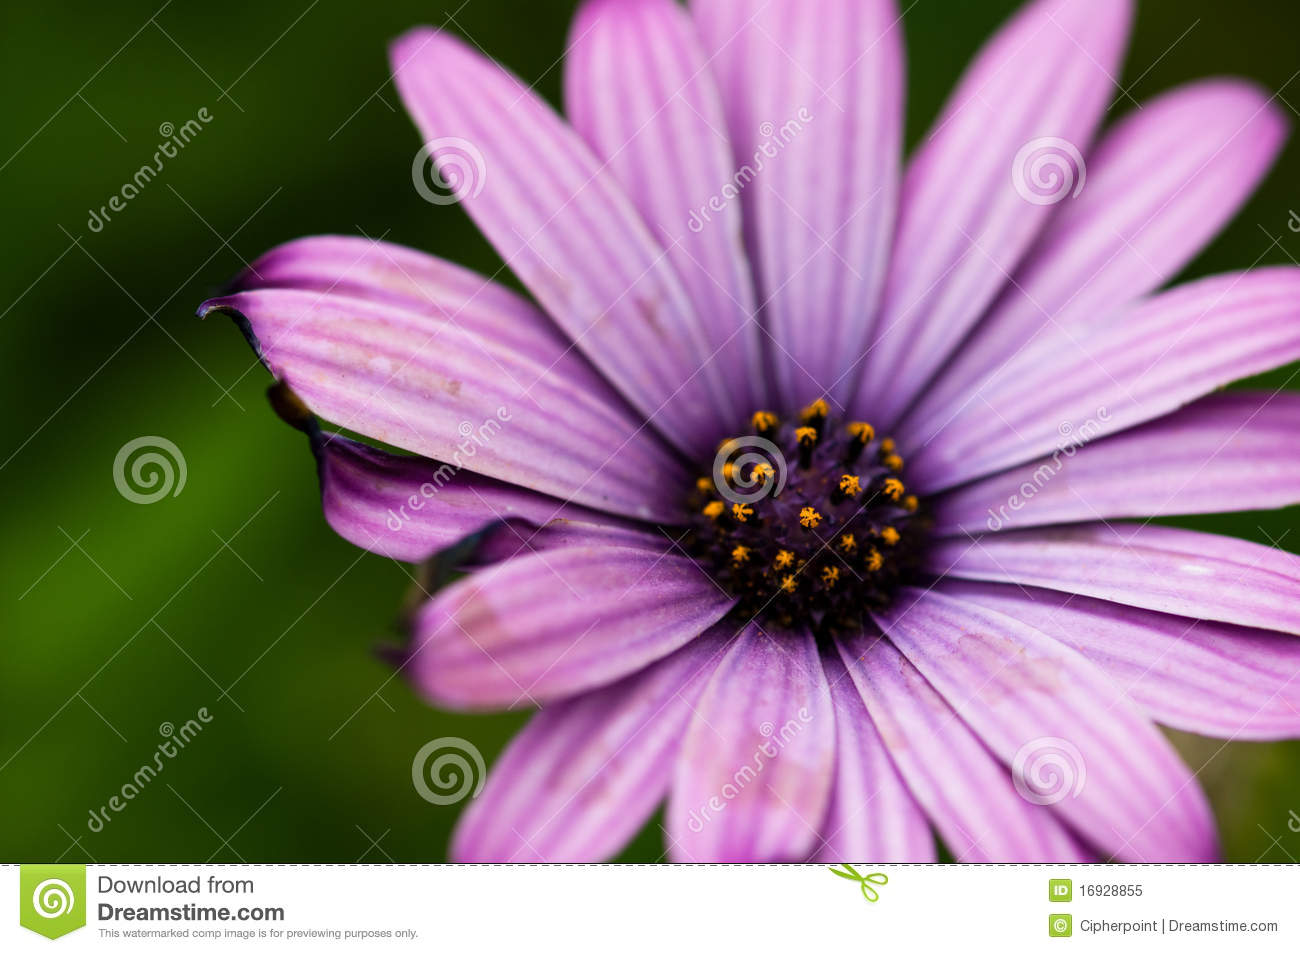 Bright purple daisy flower stock image image of background 16928855 bright purple daisy flower izmirmasajfo